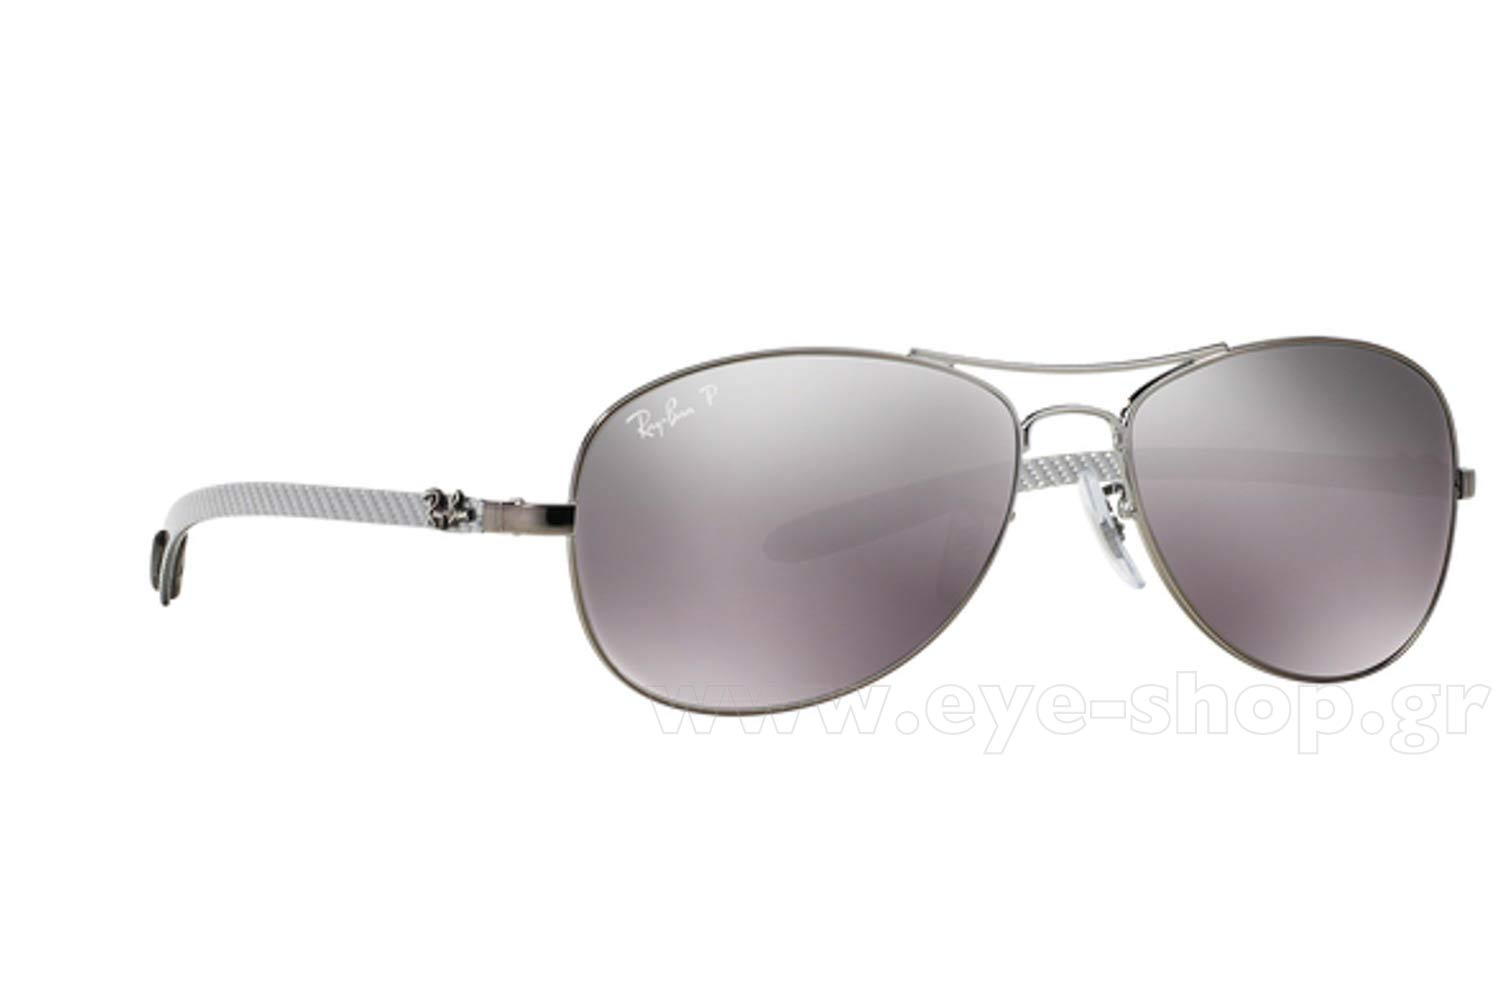 530d93a8eb0e46 RAYBAN 8301 004 N8 CARBON FI 59   SUNGLASSES Men EyeShop